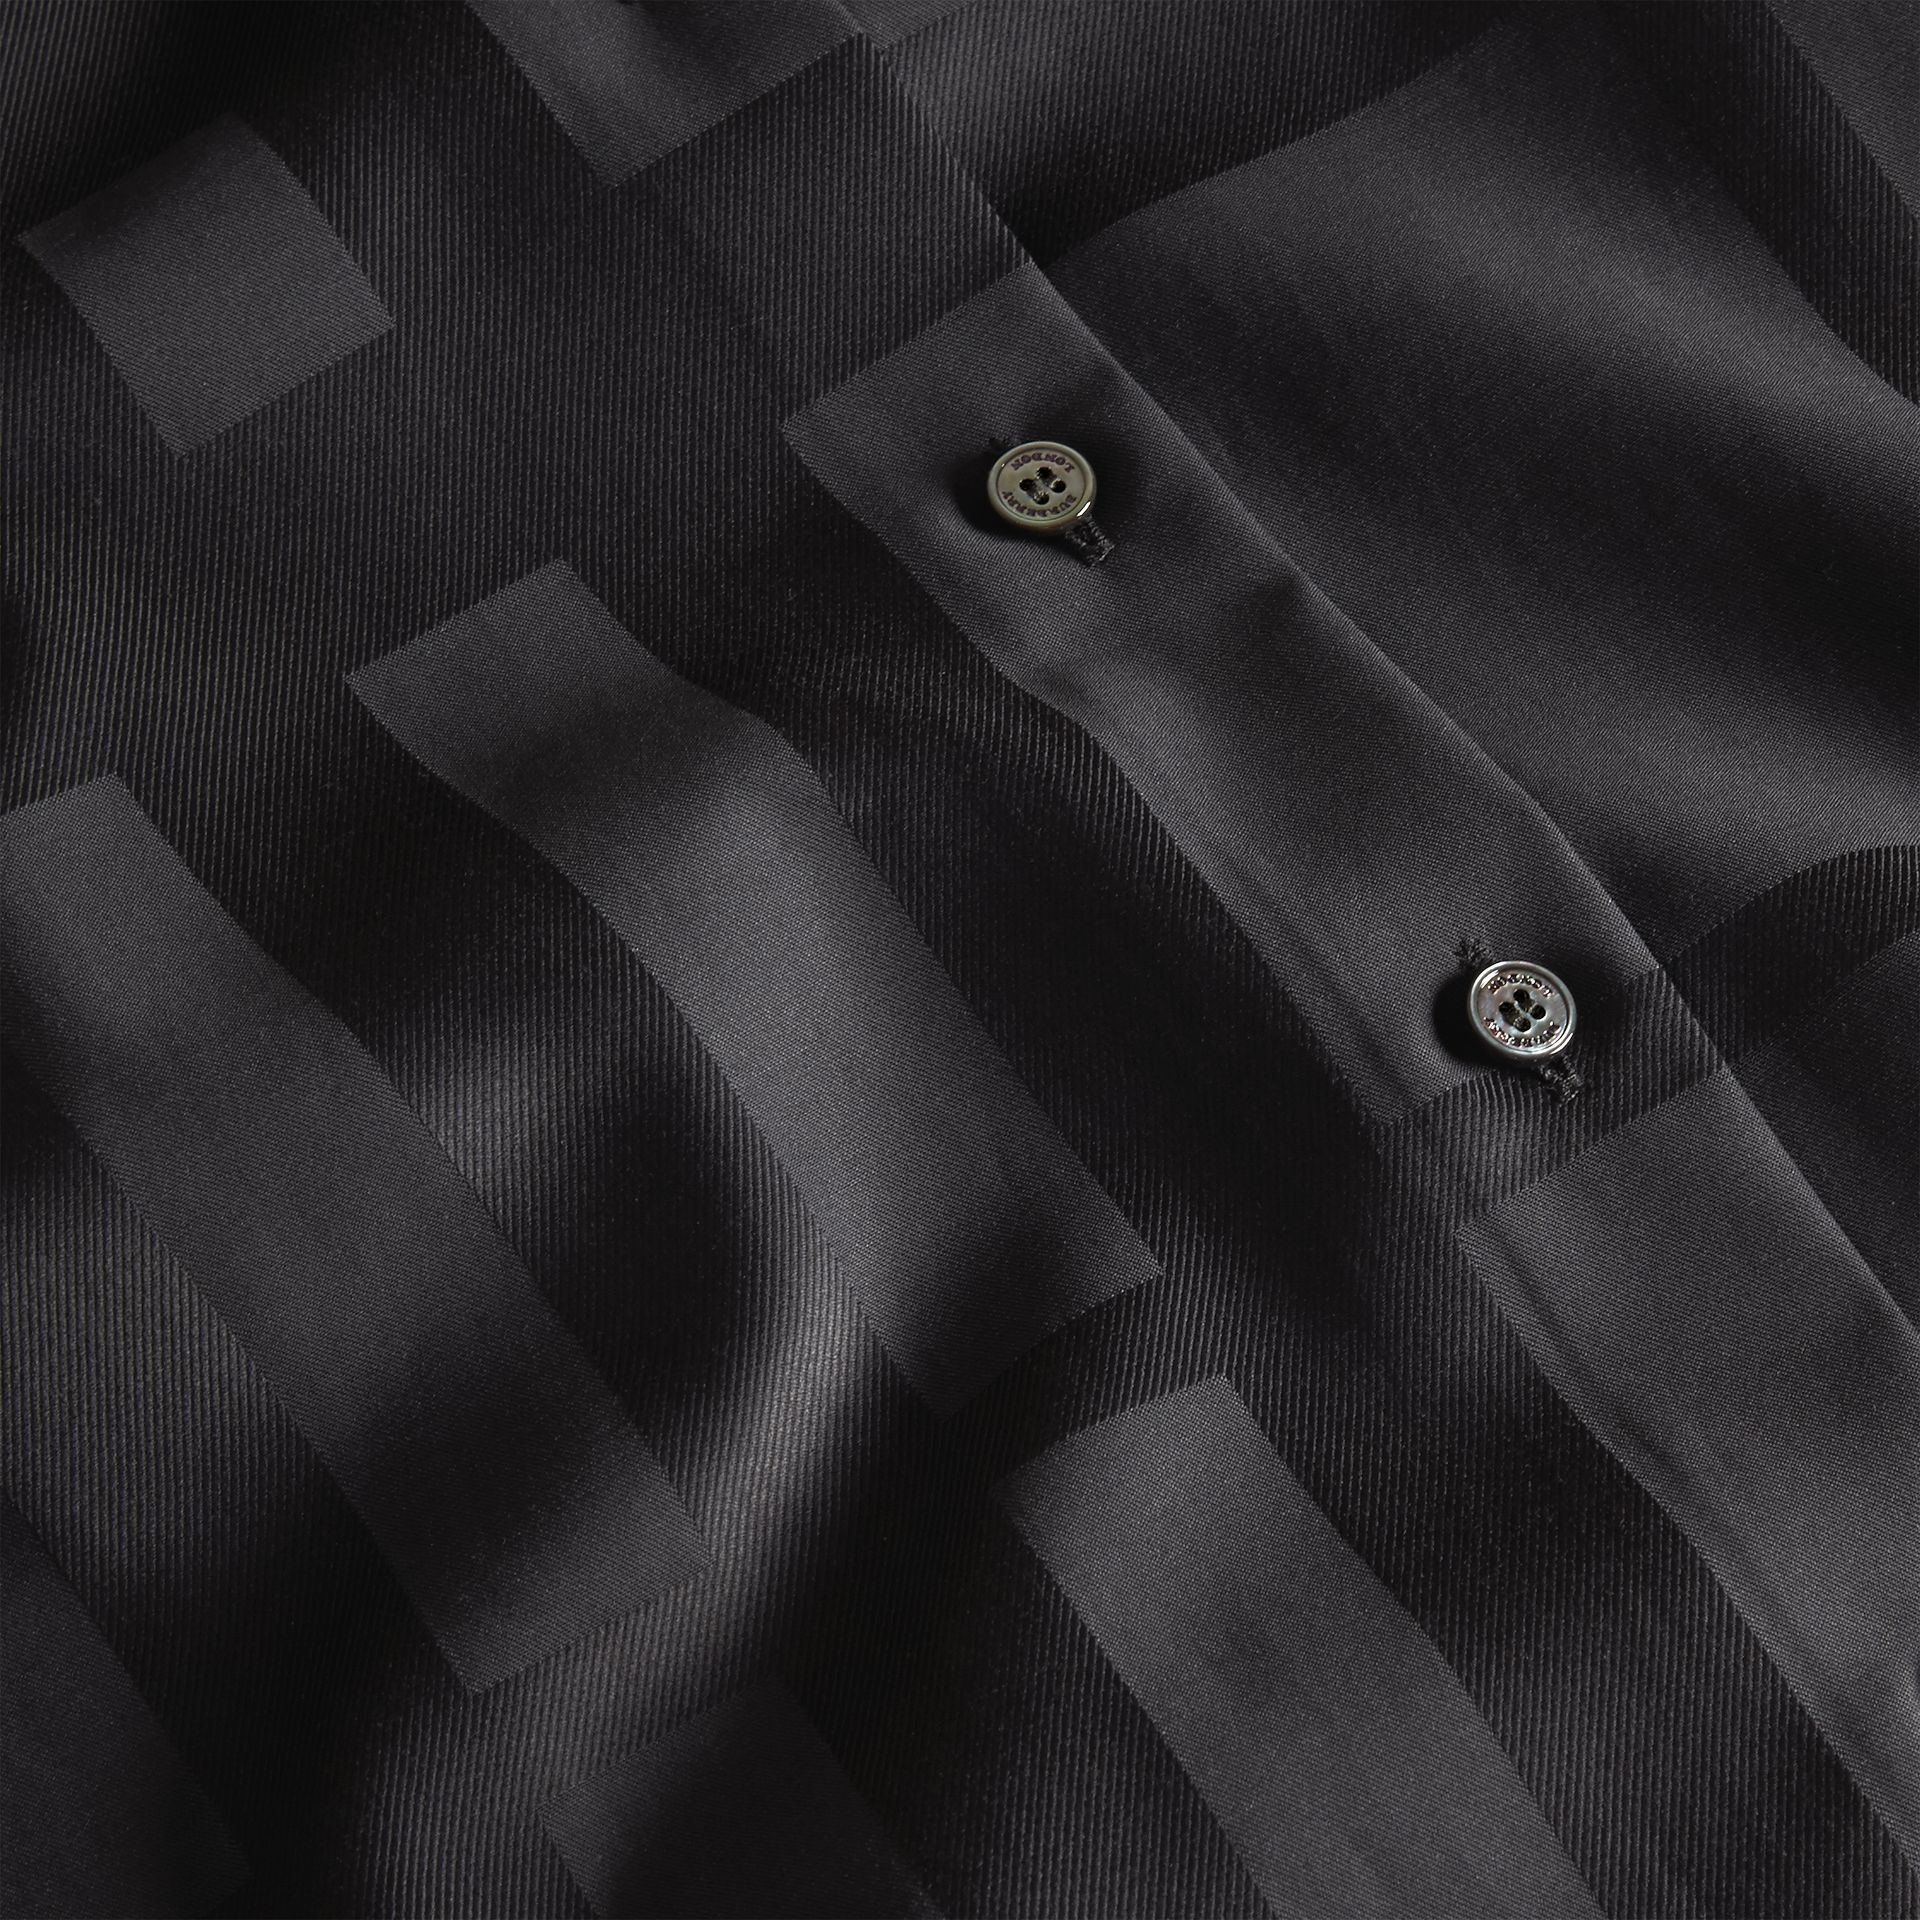 Black Check Jacquard Cotton Shirt Black - gallery image 2